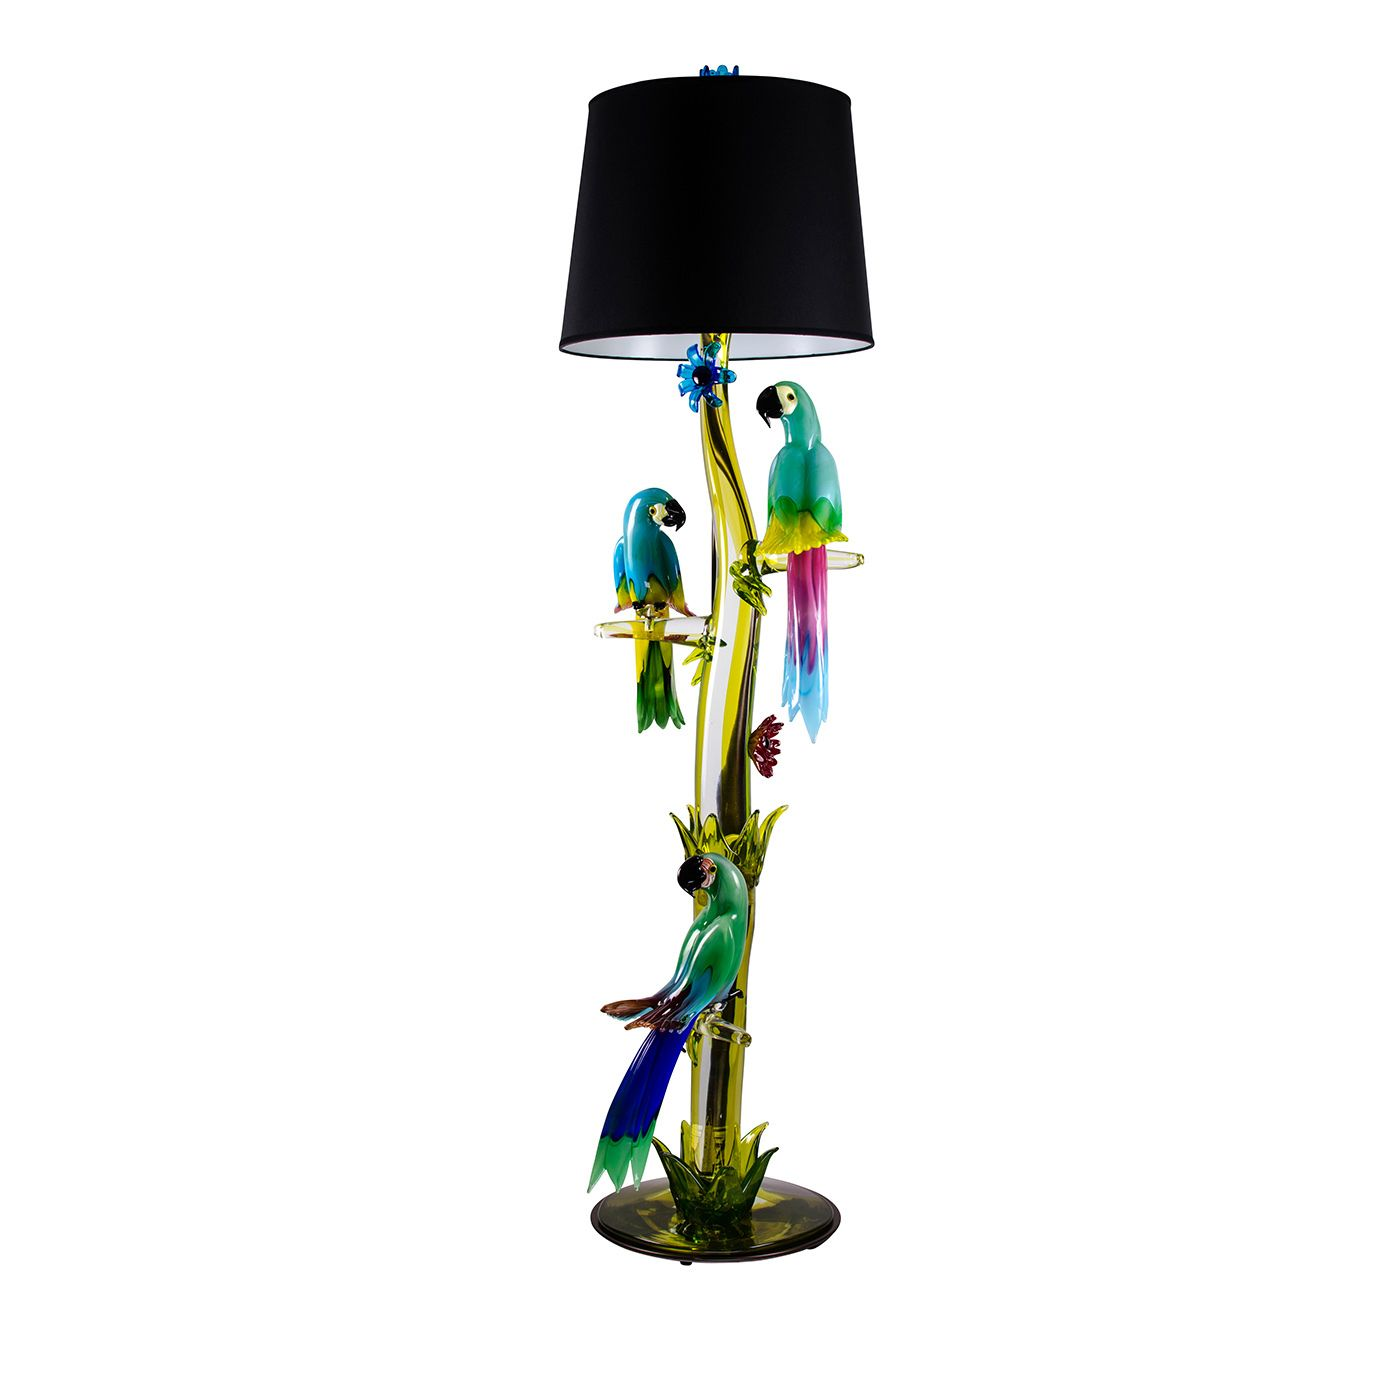 Murano Glass Parrot Floor Lamp Shop Timeless Lighting Handcrafted In Italy Chandeliers Pendant